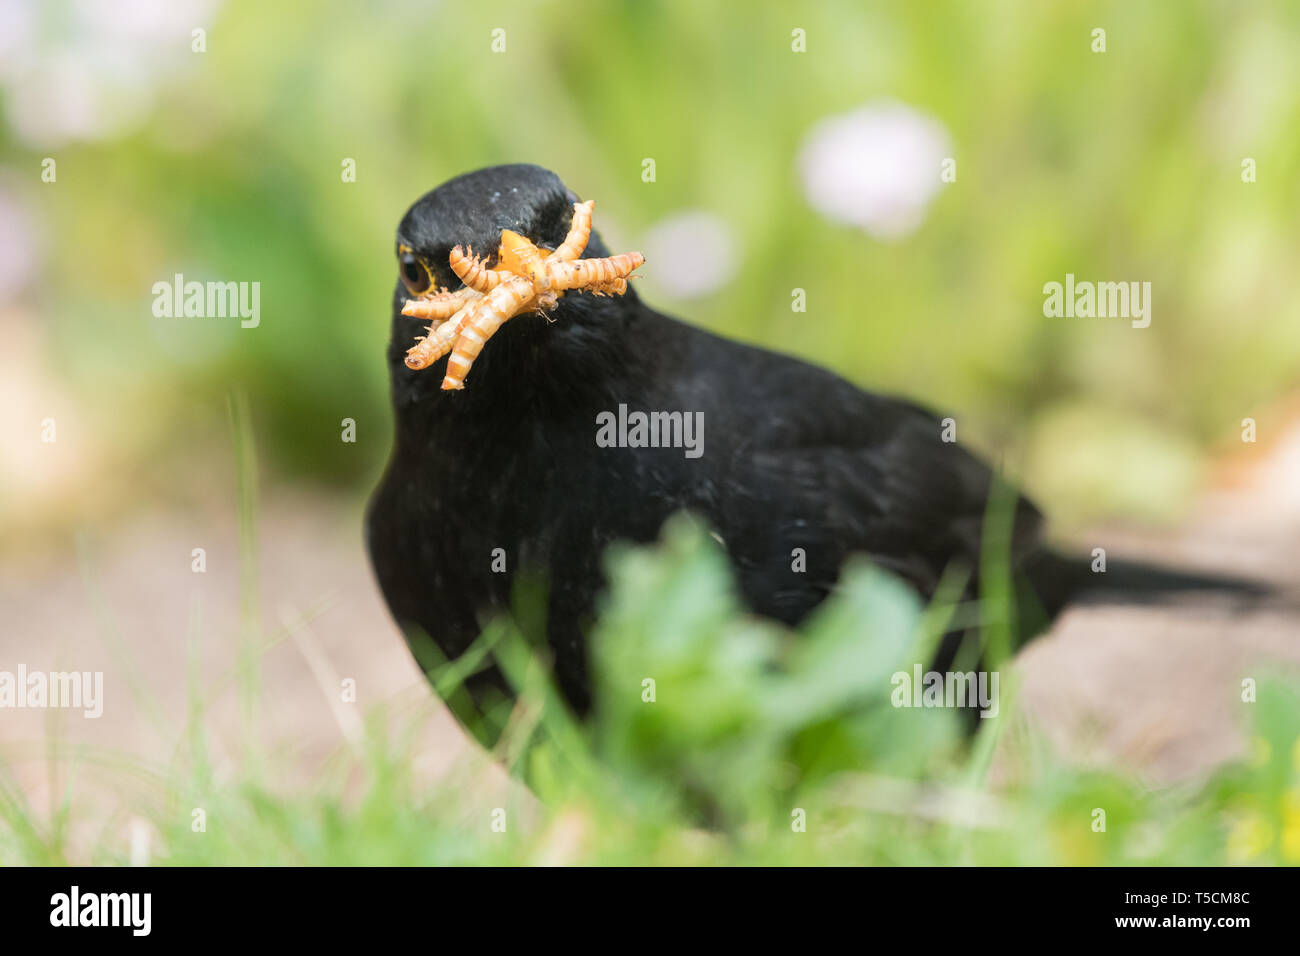 Stirlingshire, Scotland, UK. 23rd Apr, 2019. uk weather - a blackbird collecting food for its young takes full advantage of live mealworms left out in a Stirlingshire garden on another dry day. Dry weather makes it very difficult for ground feeding birds such as blackbirds to access earthworms because of hard soil. Credit: Kay Roxby/Alamy Live News Stock Photo